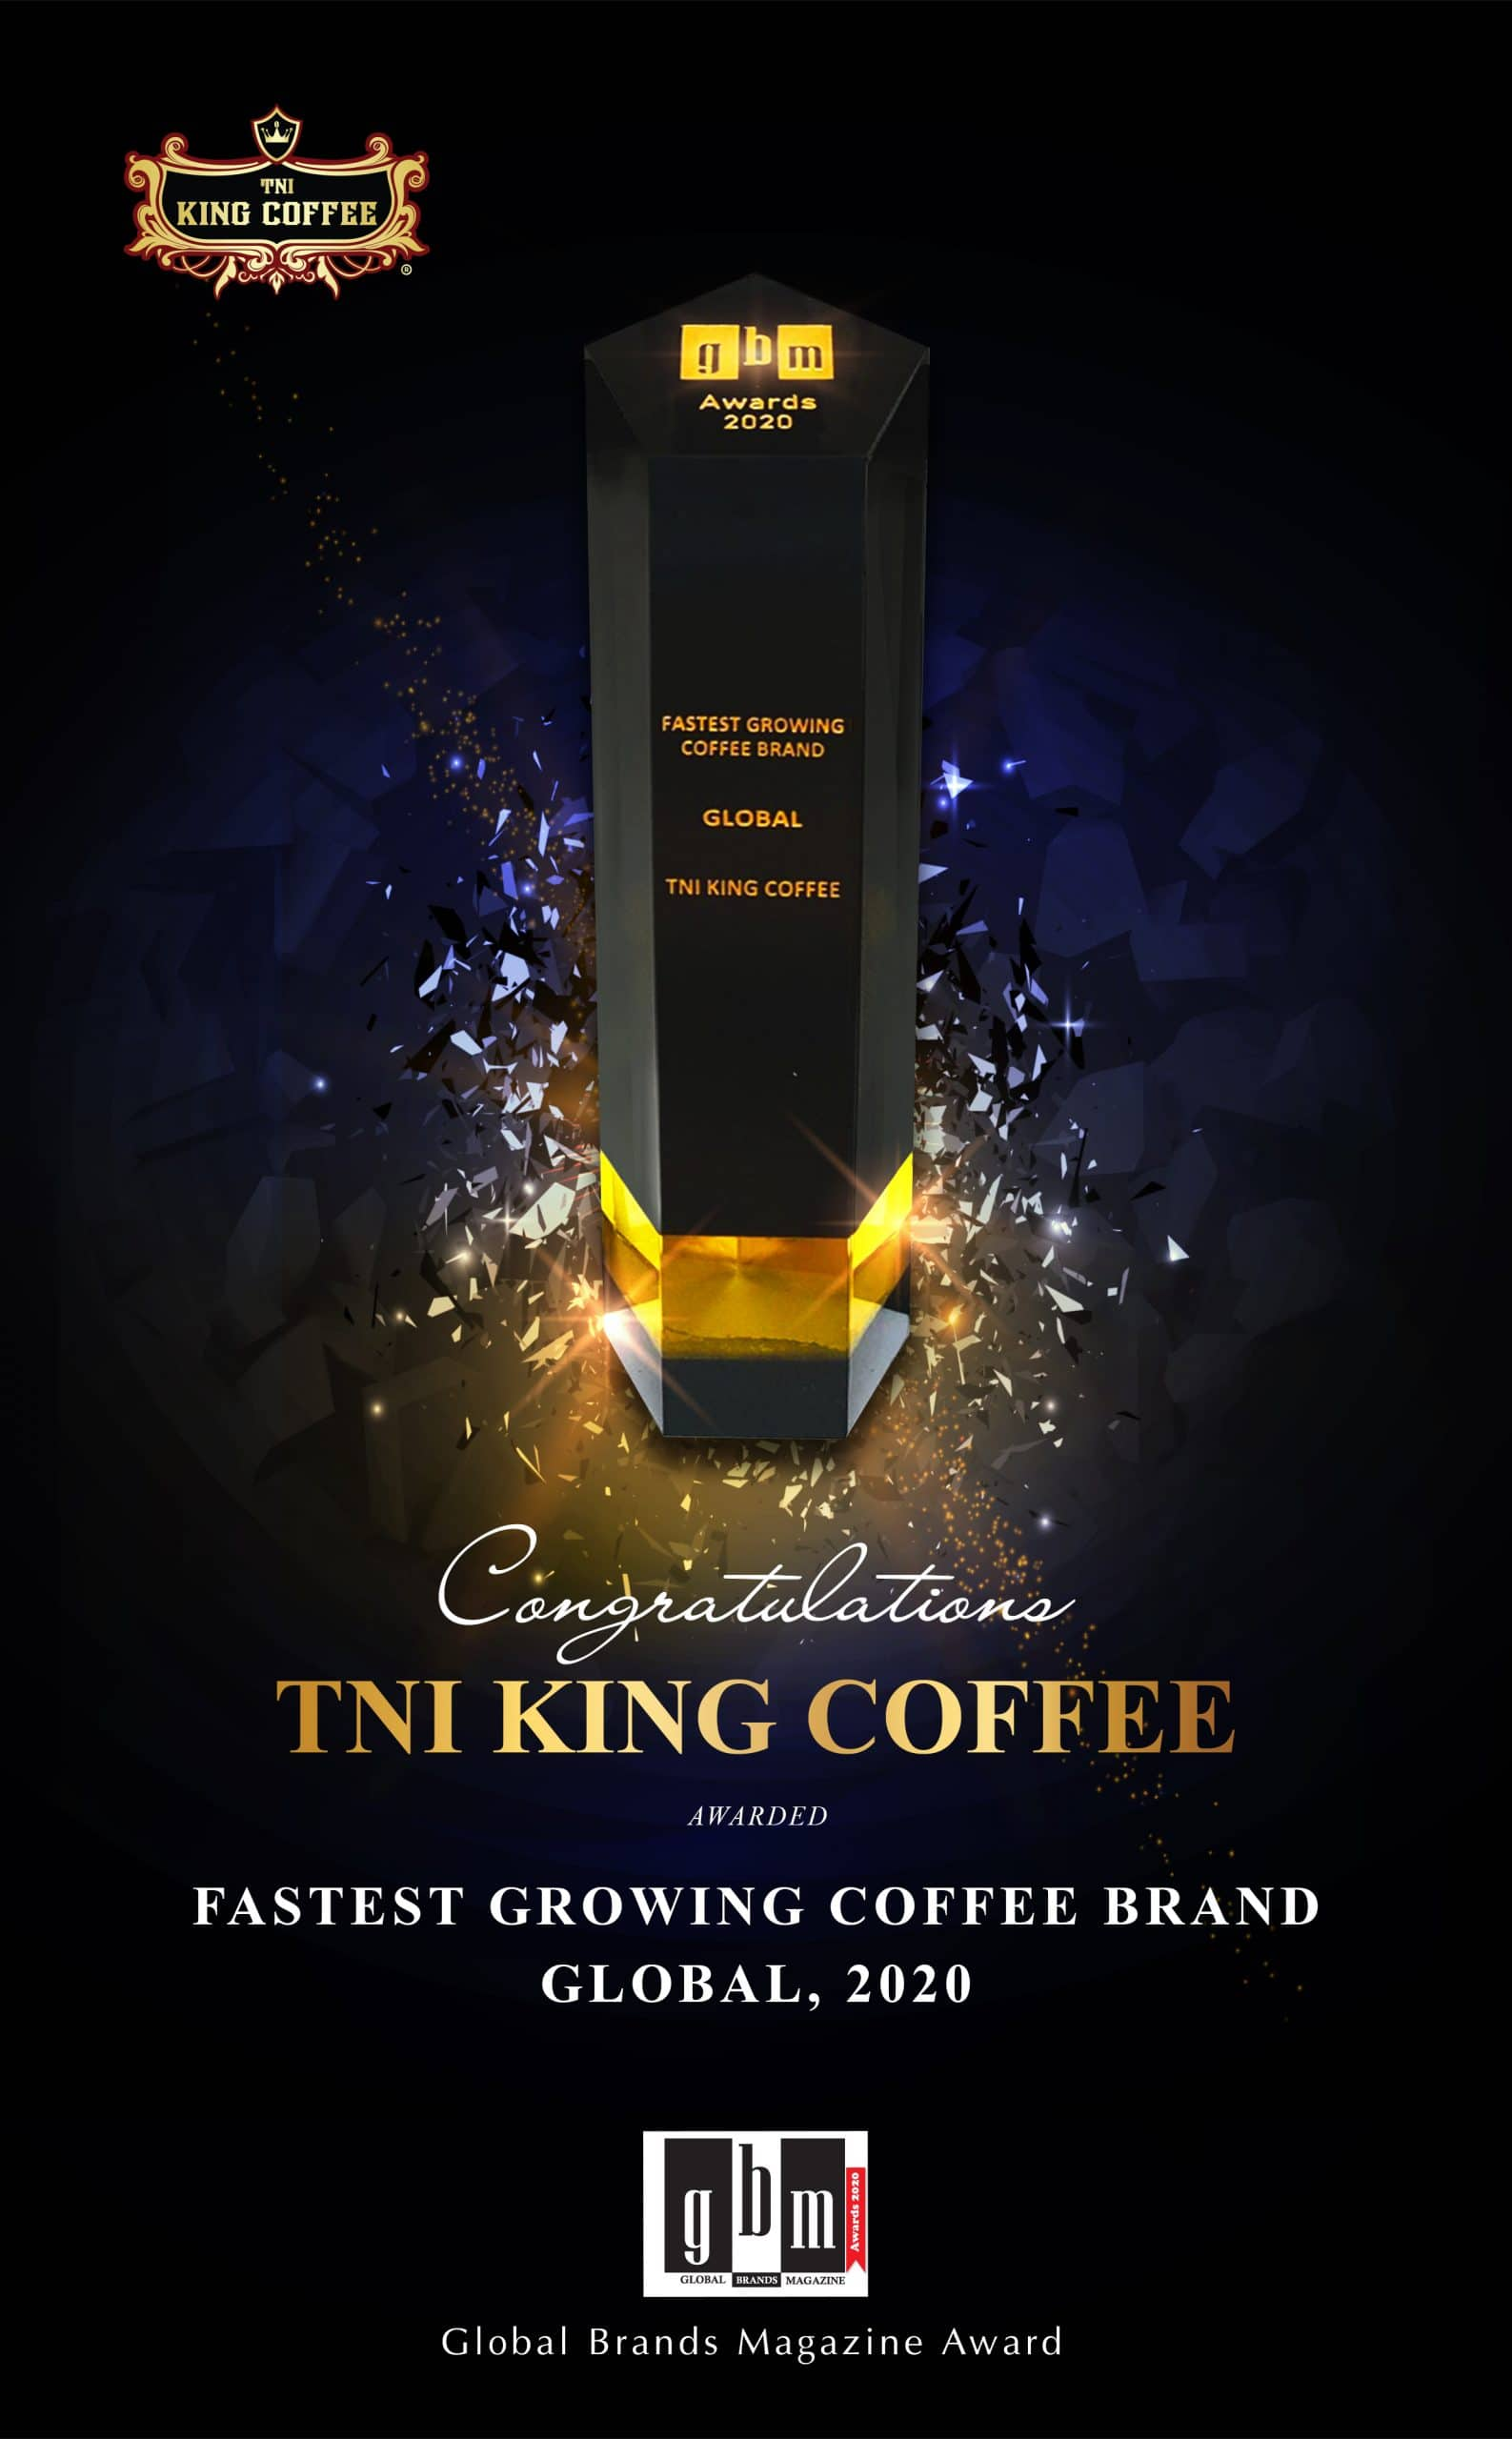 WORLD'S FASTEST COFFEE BRAND: TNI KING COFFEE